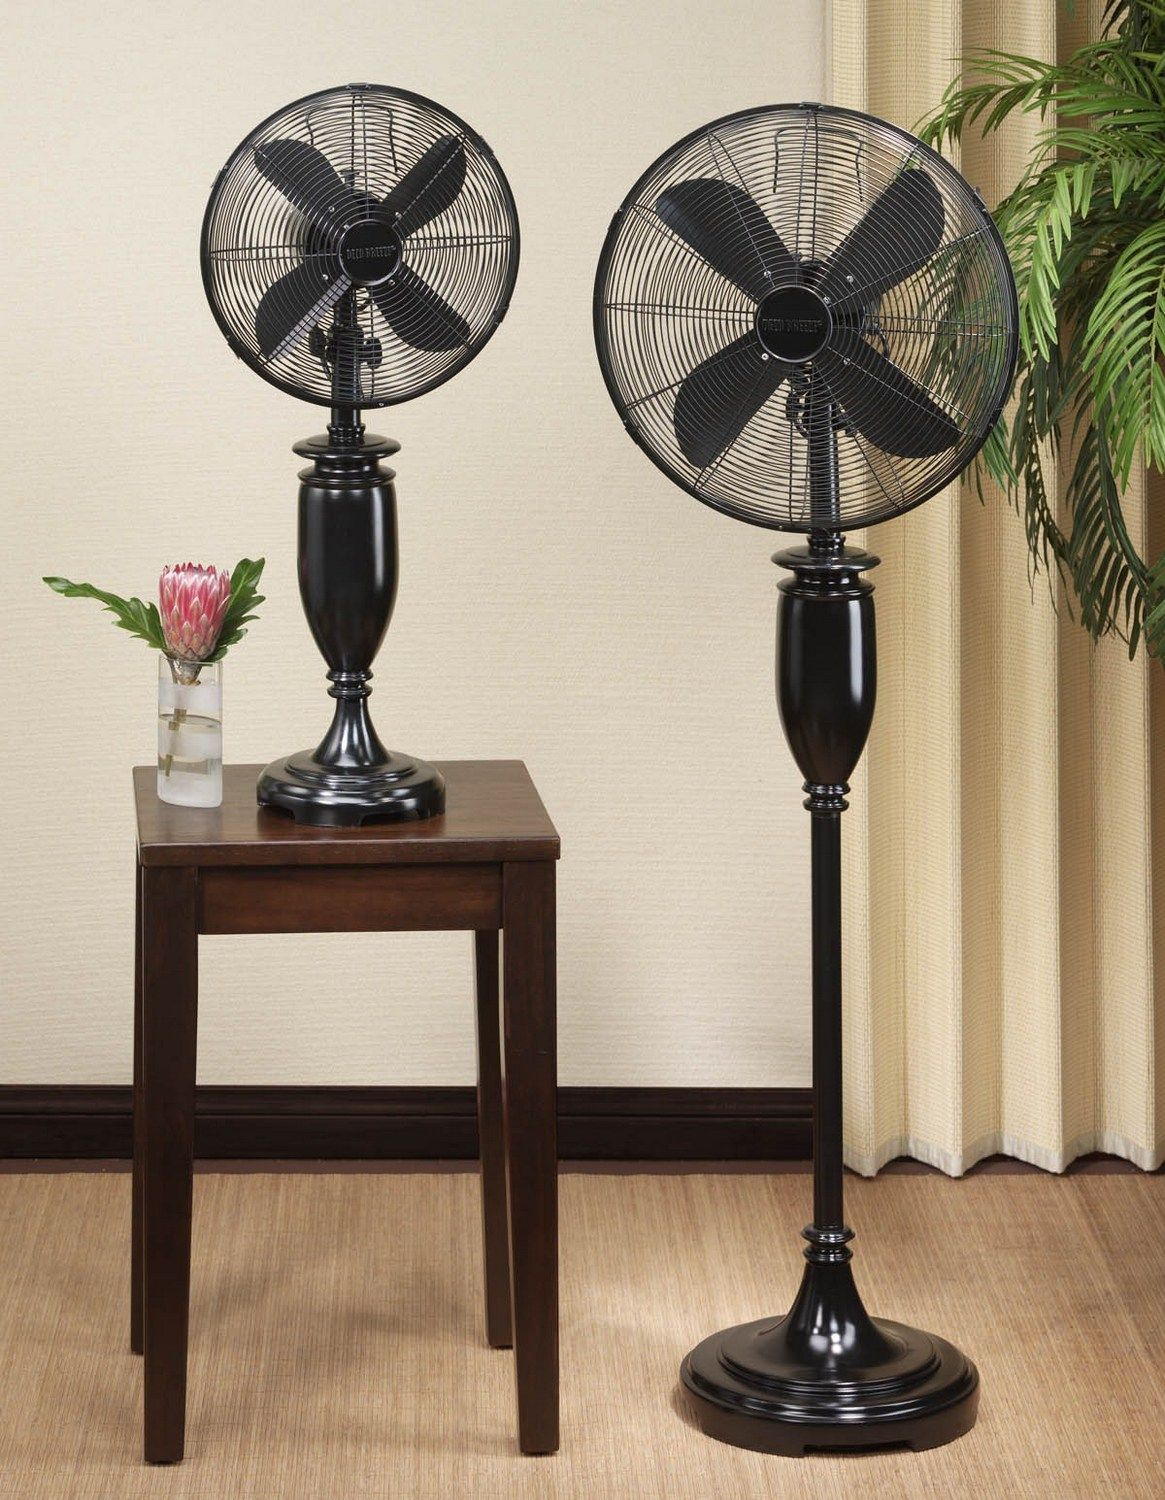 floor cool fan arden fanimation dropship pin pedestal bronze floors rubbed pinterest oil vibes warm